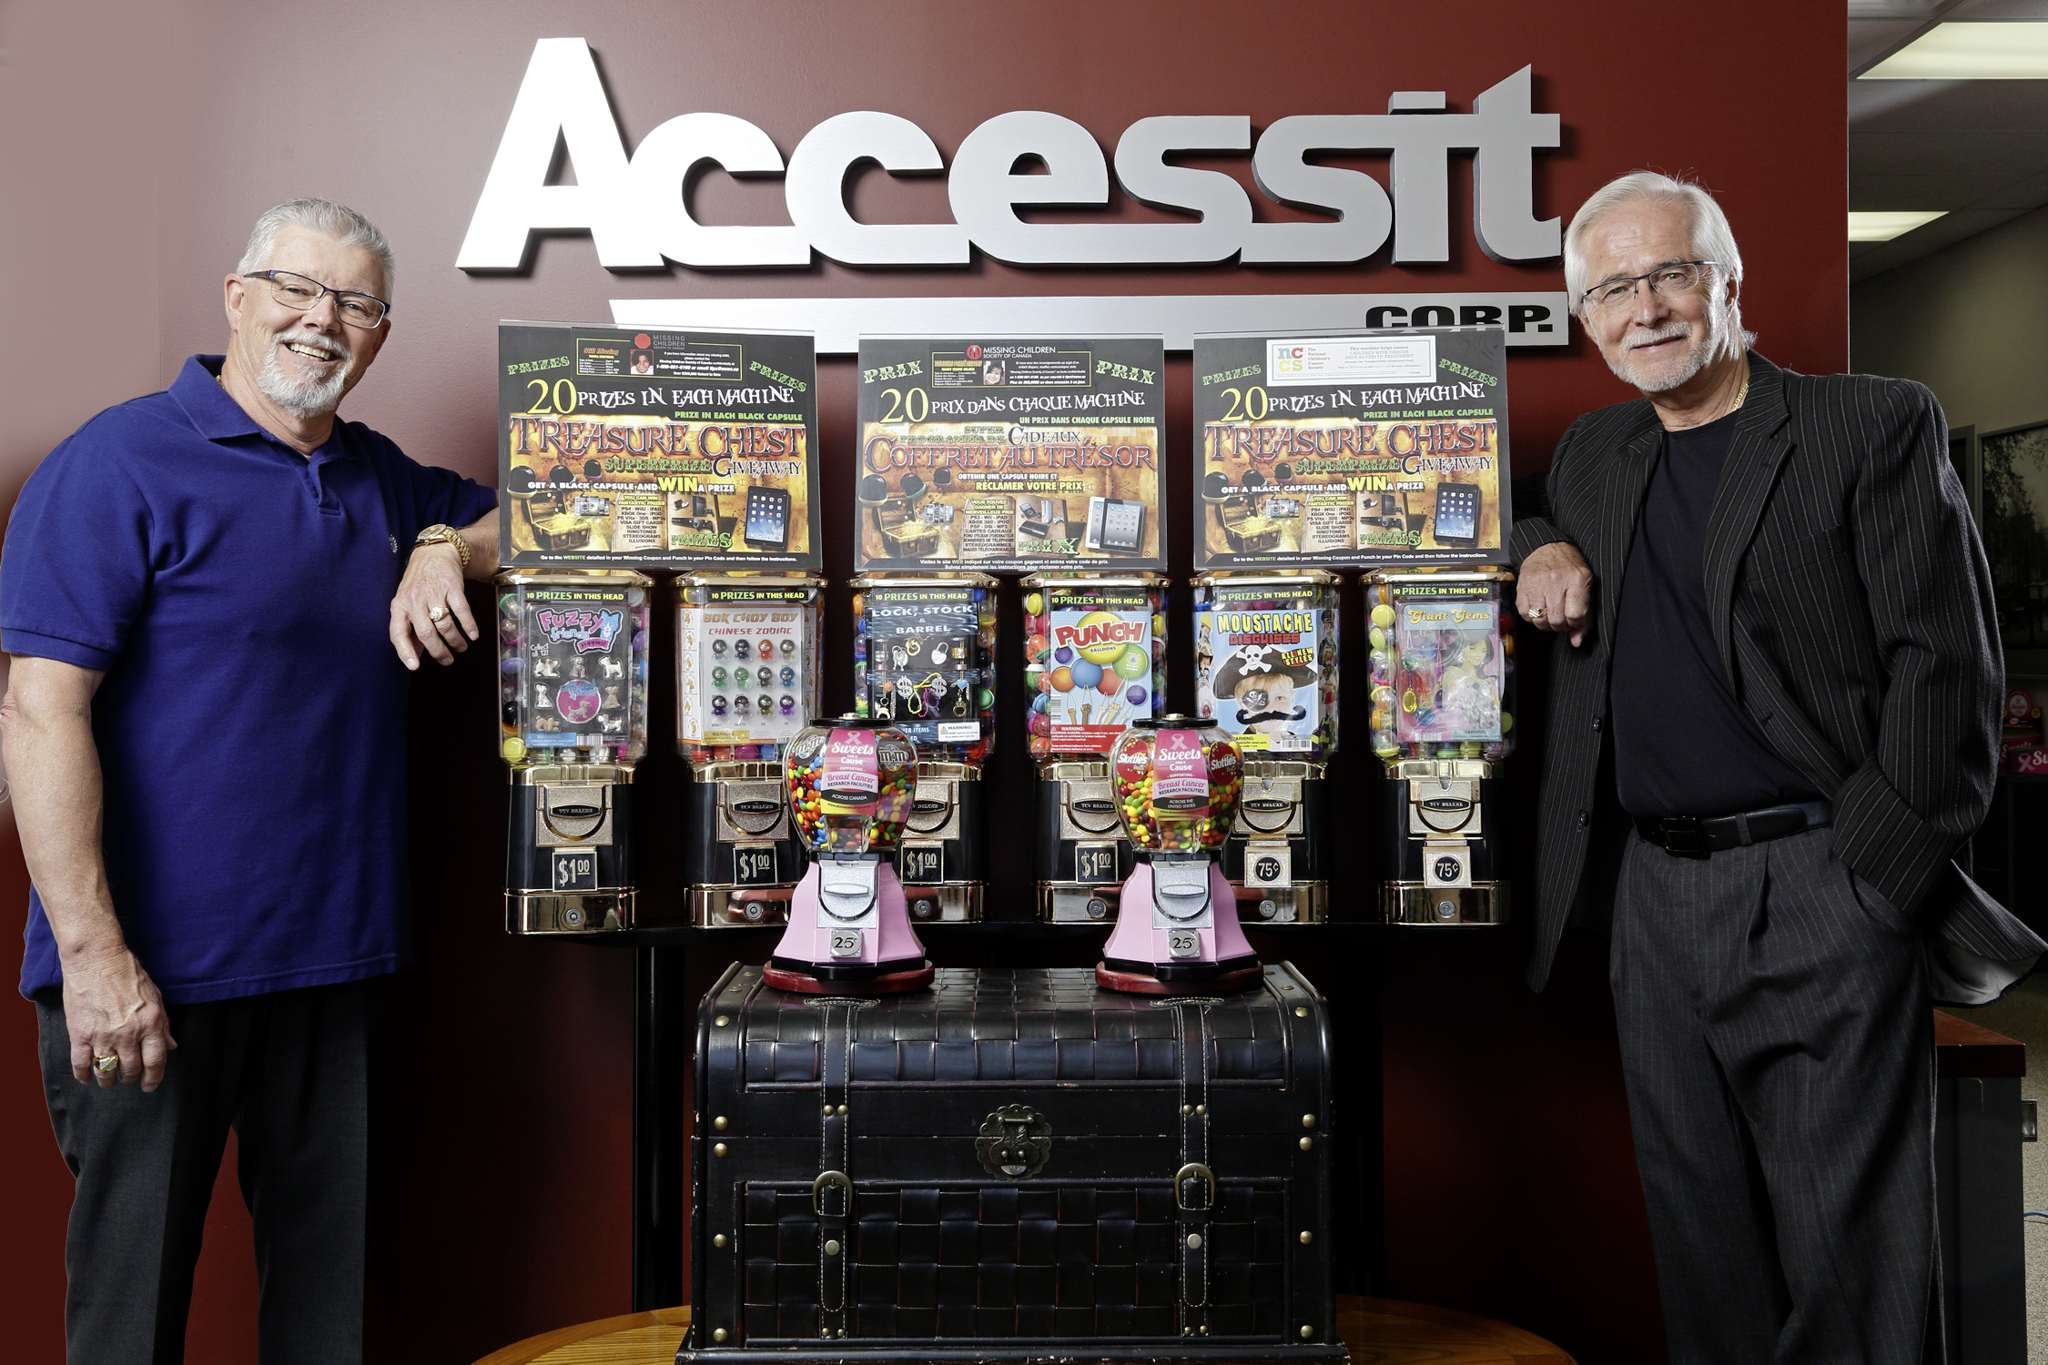 Accessit Corp. president Paul Shepperson and chief executive officer Tom Semeniuk stand with their vending machines for charity.